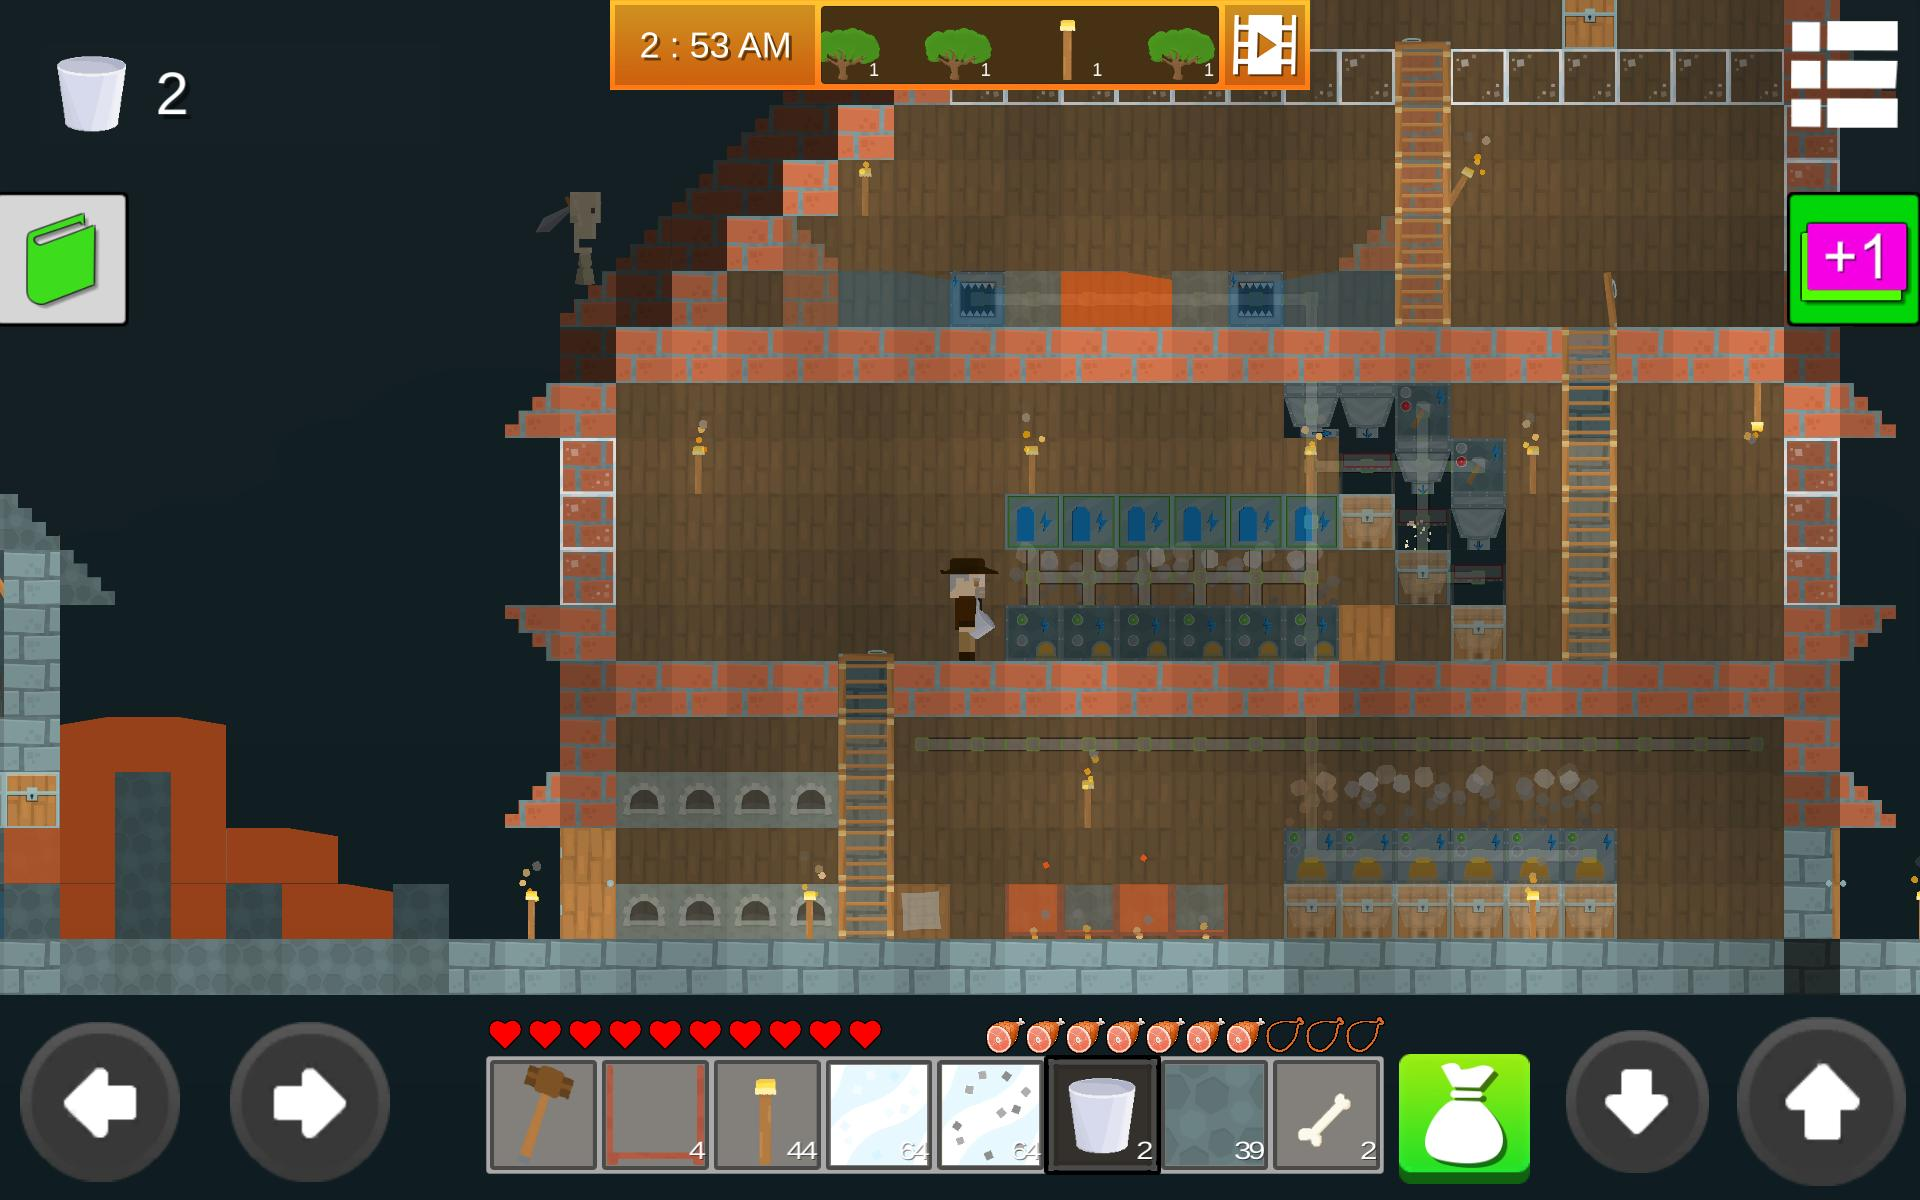 Sky Factory Mobile for Android - APK Download